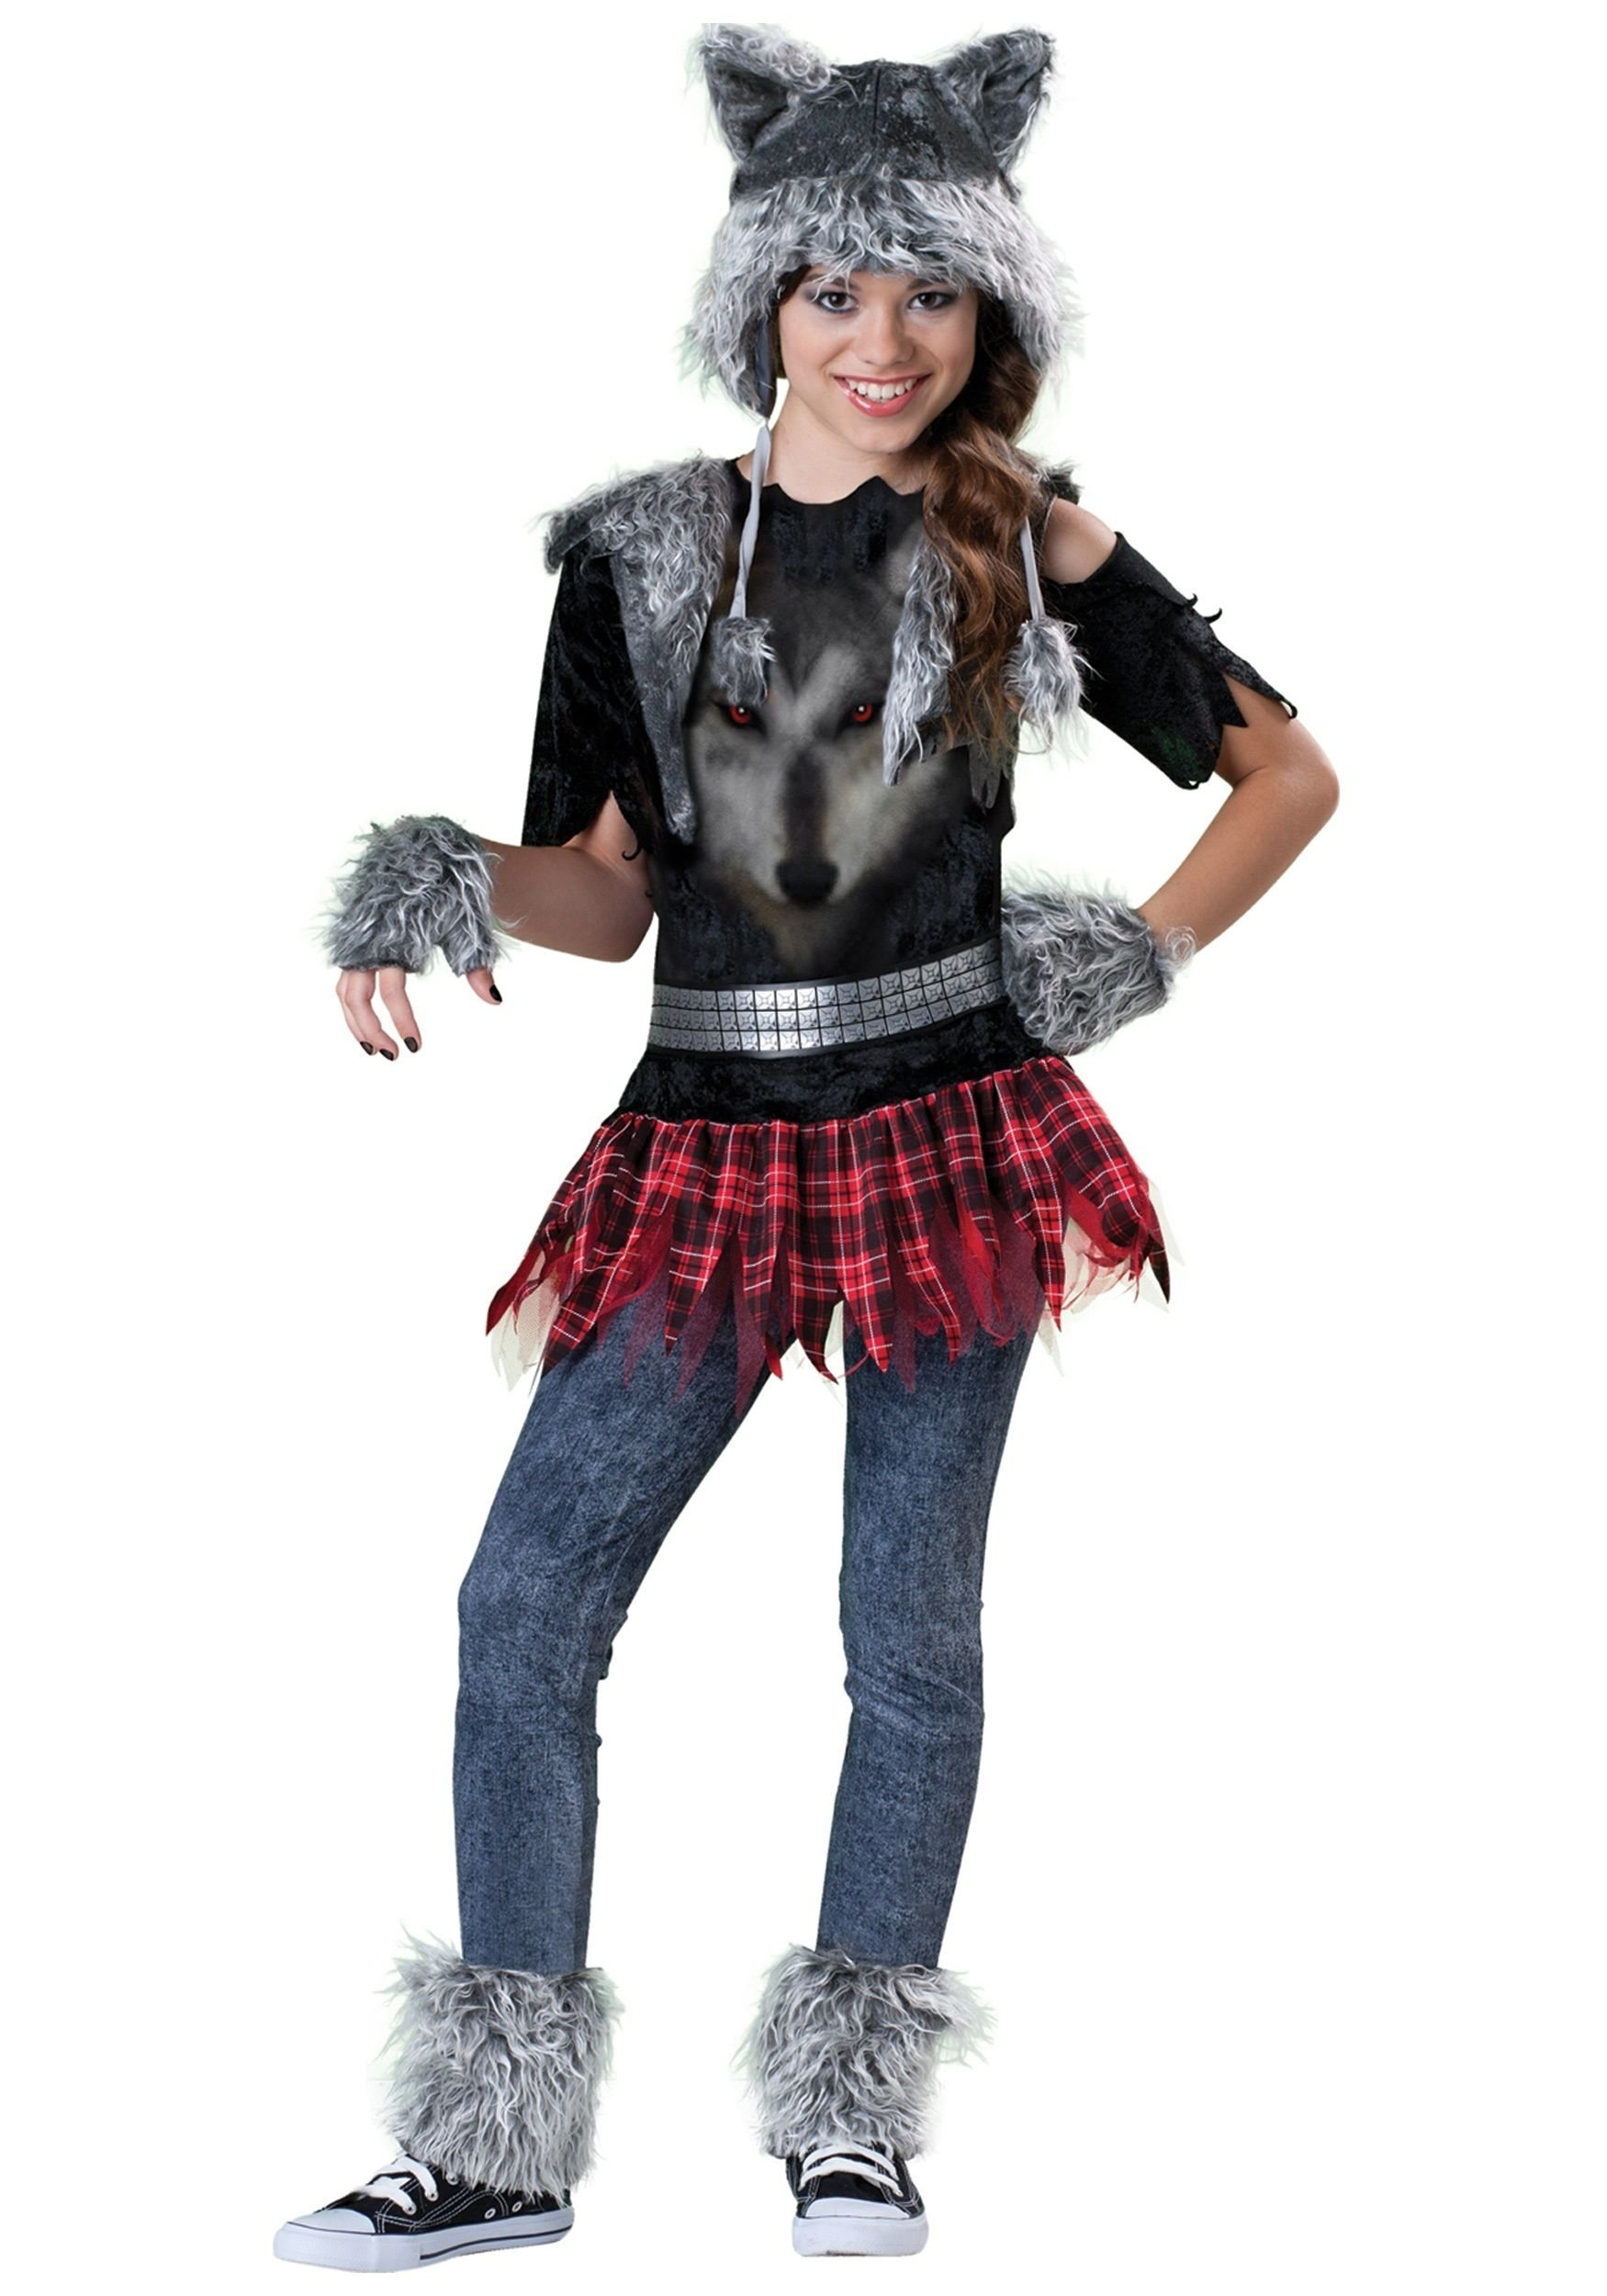 10 Spectacular Scary Halloween Costume Ideas For Women tween costumes for girls halloween costumes classic costume ideas